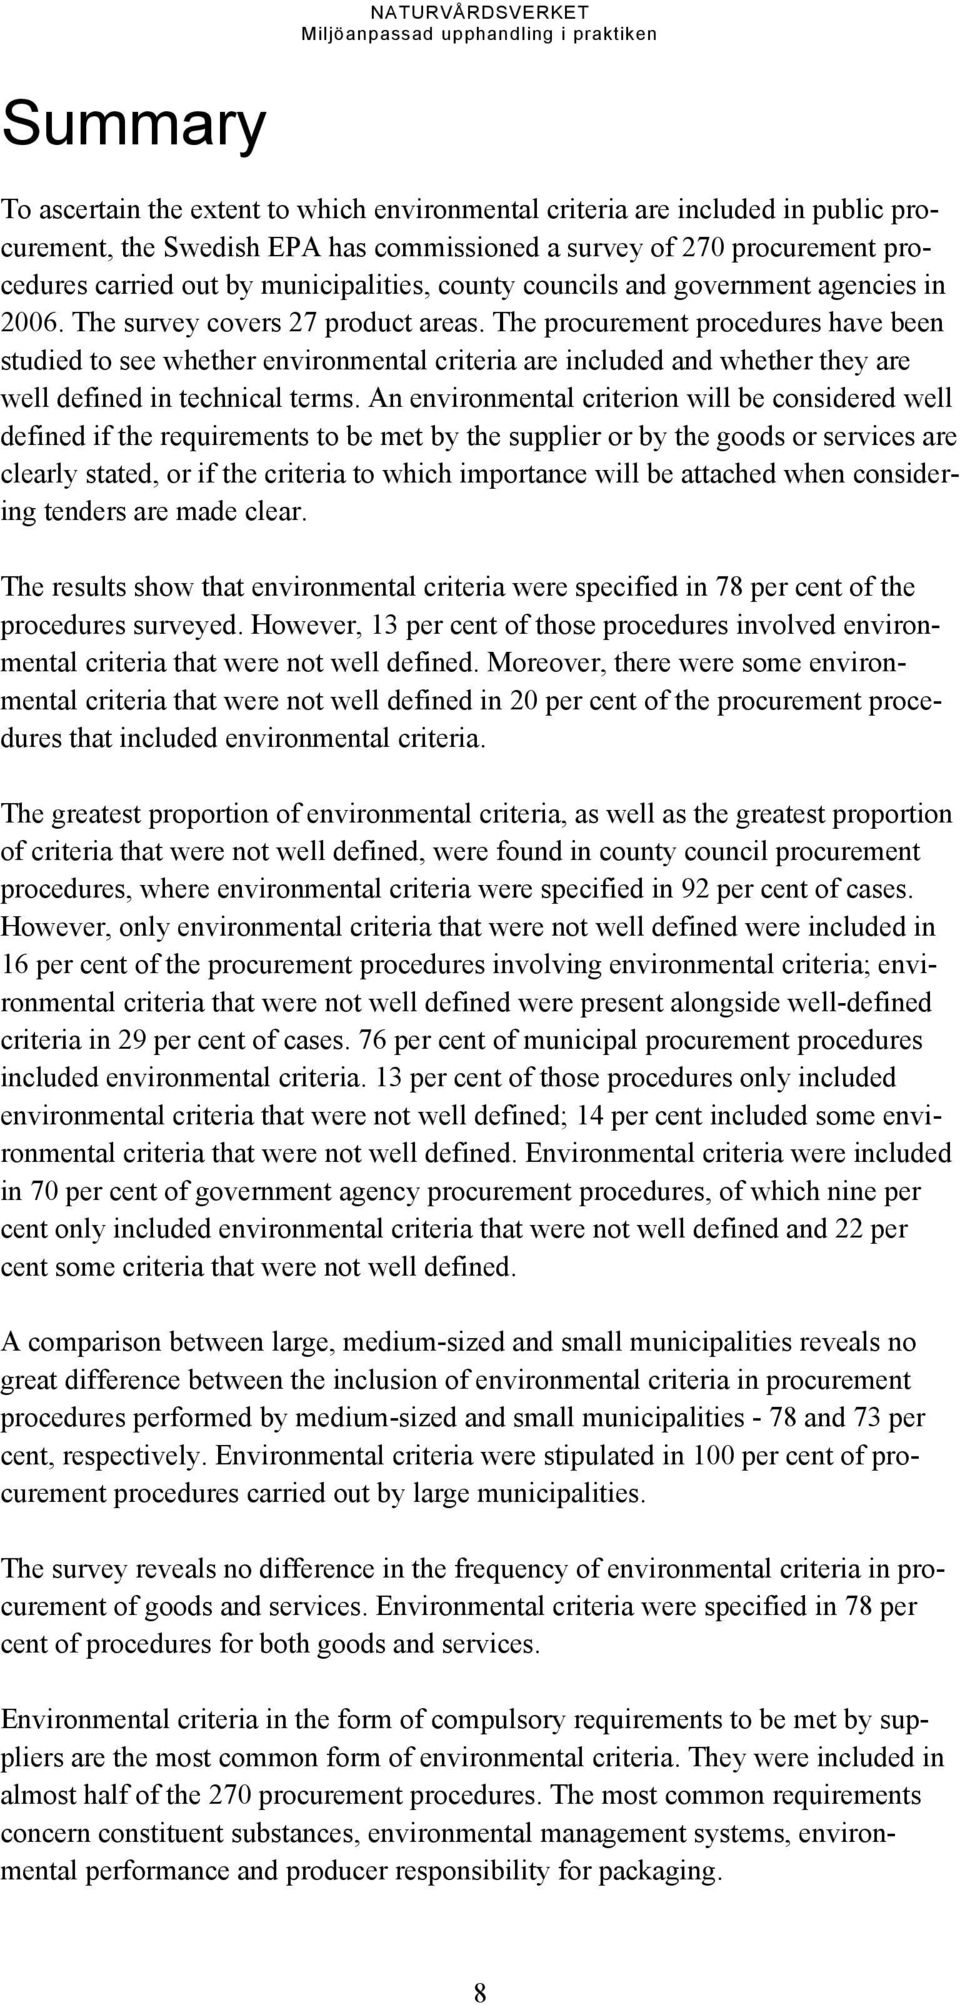 The procurement procedures have been studied to see whether environmental criteria are included and whether they are well defined in technical terms.